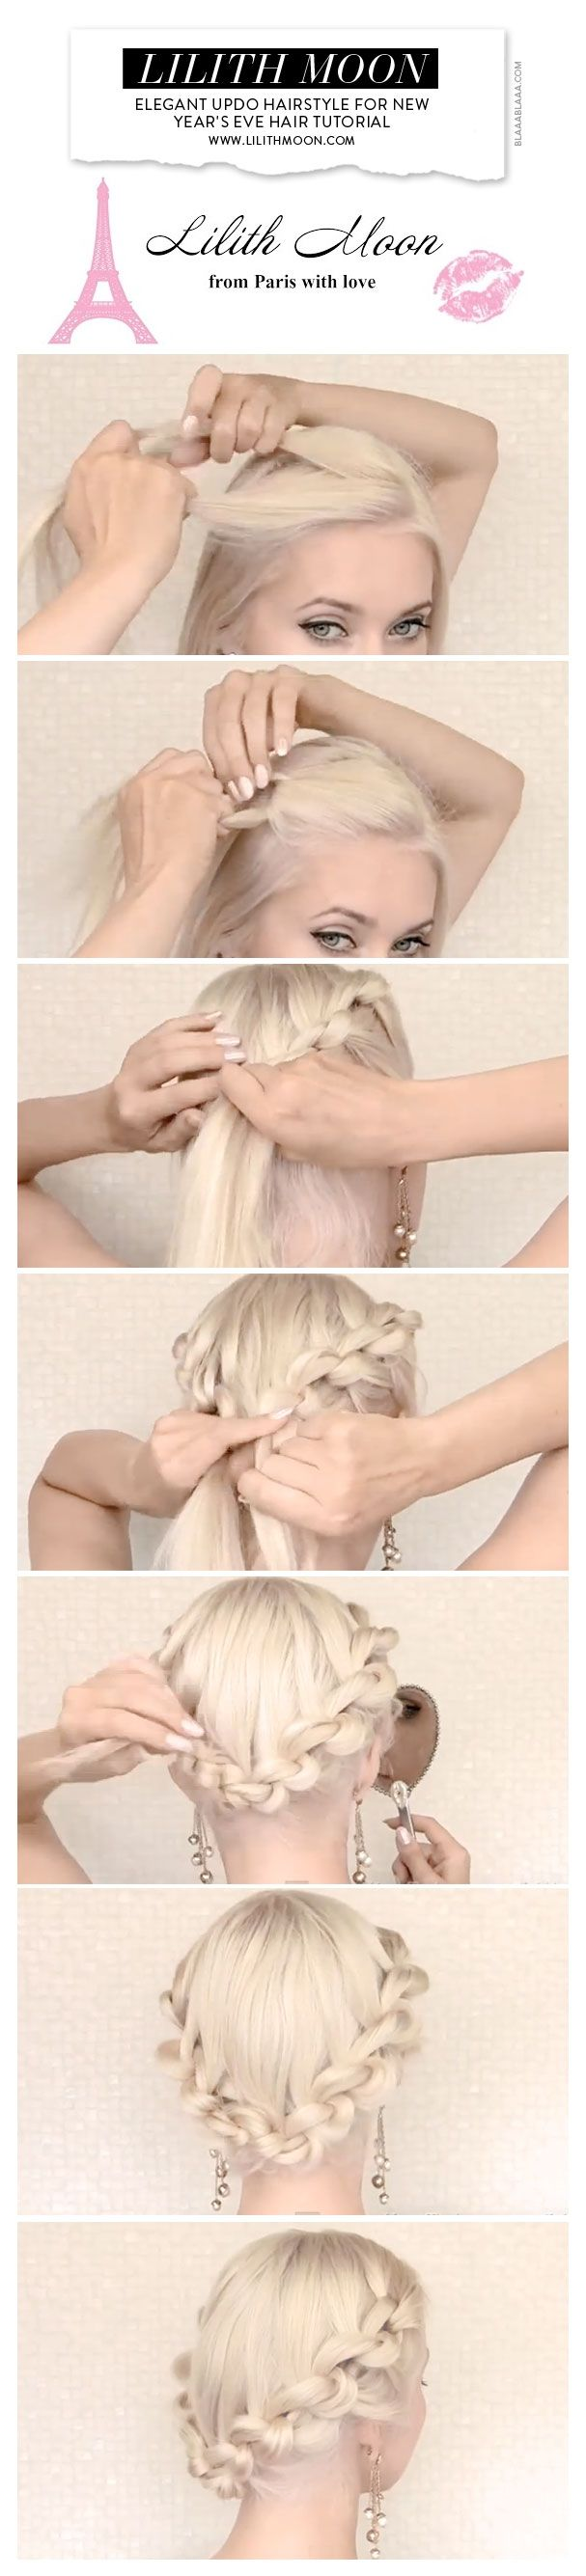 New Year's Eve Hair Tutorial by Lilith Moon